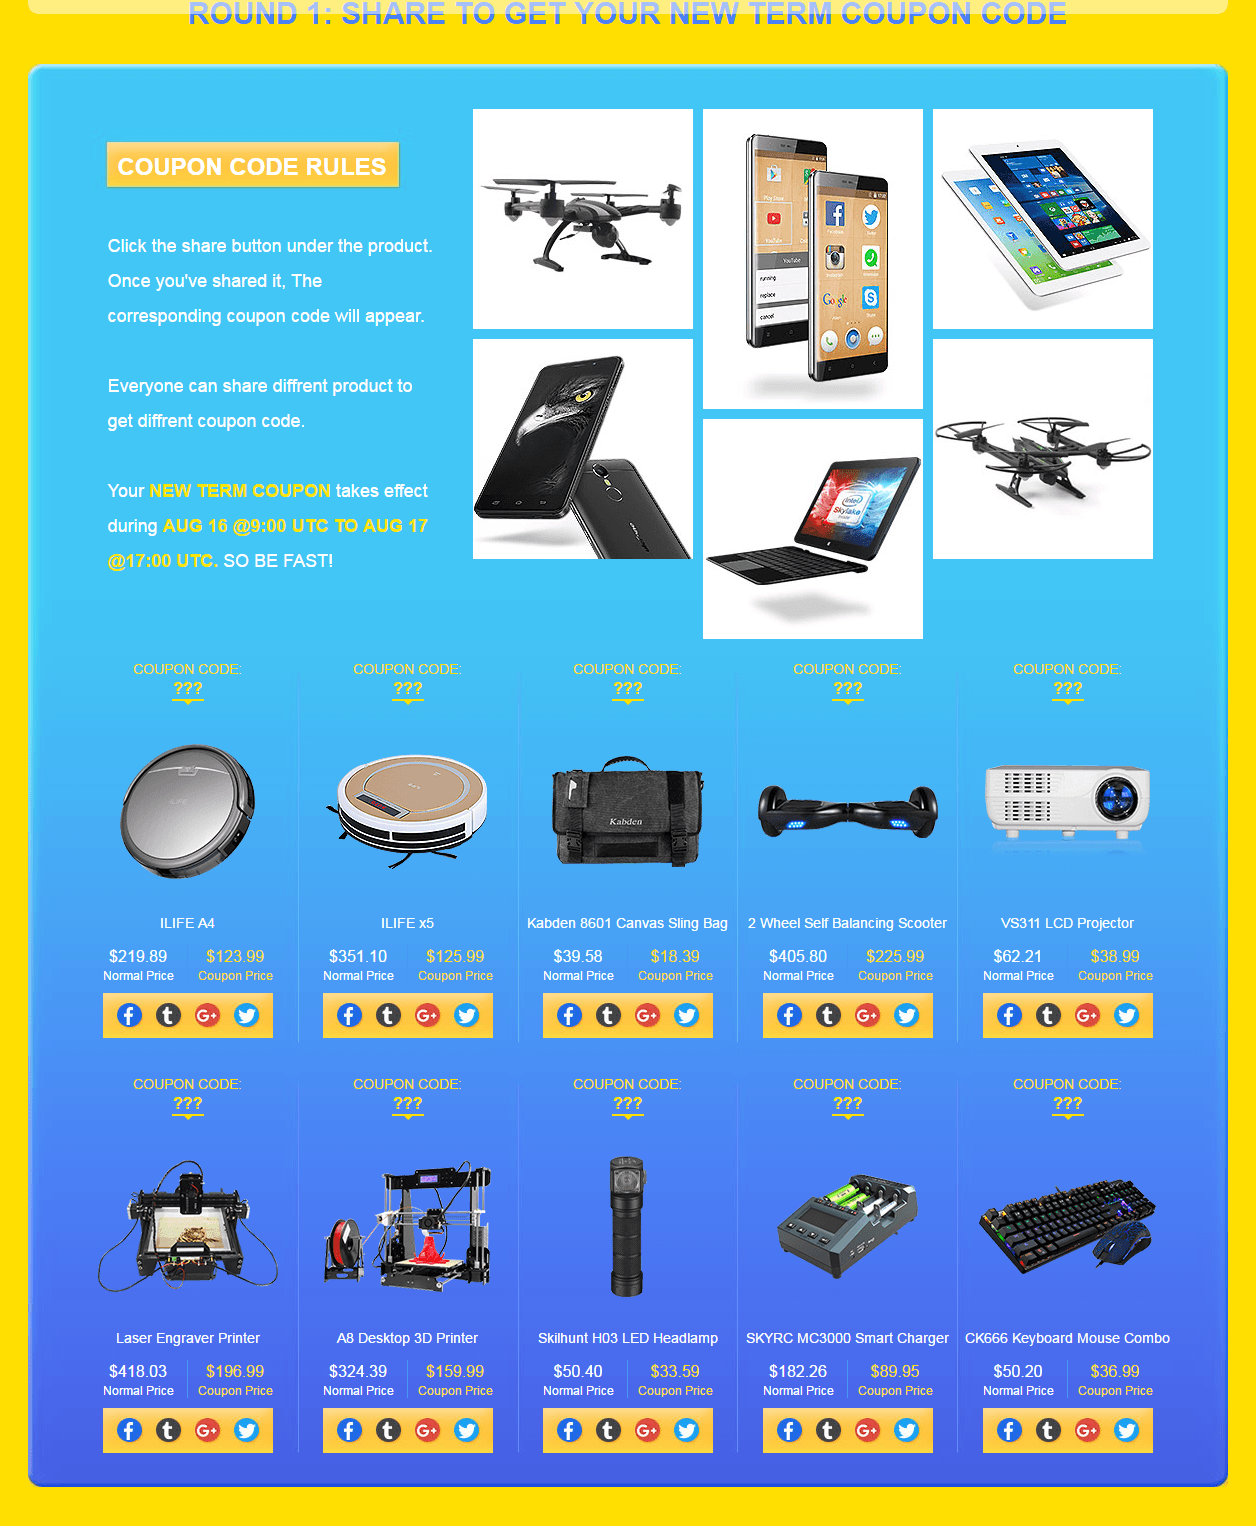 Back to School Gearbest Deals